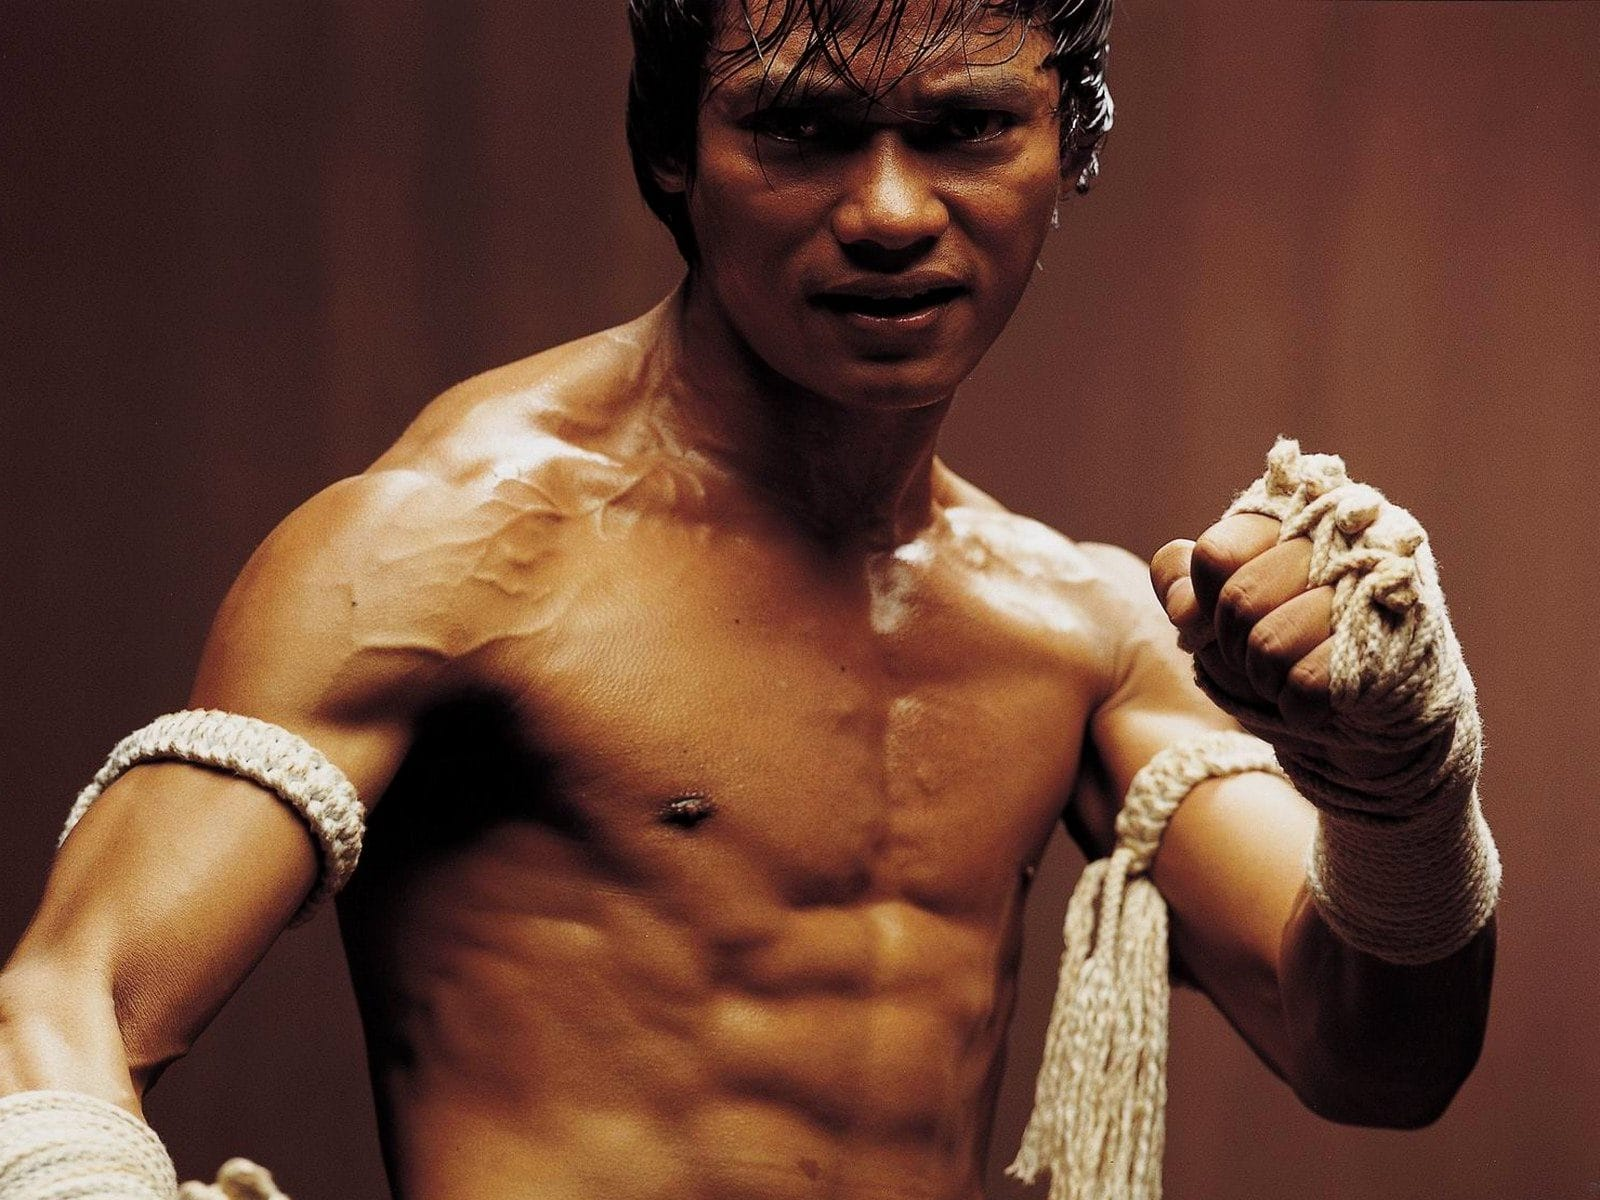 Tony Jaa HQ wallpapers